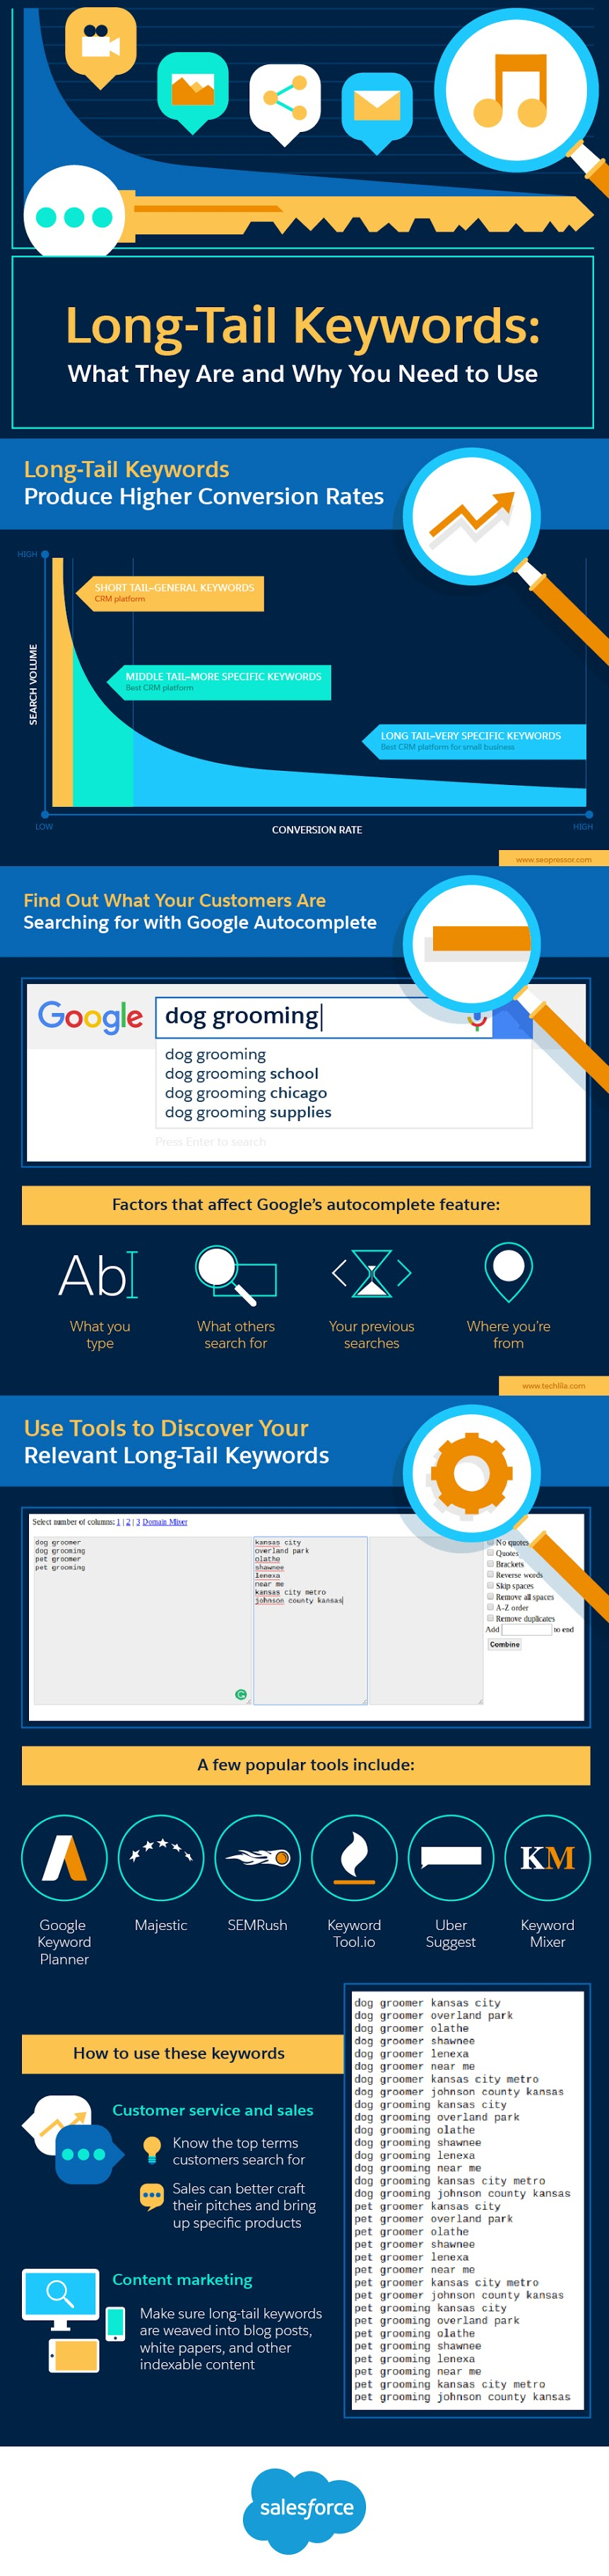 Long-Tail Keywords: What They Are and Why You Need to Use Them [Infographic] | Social Media Today